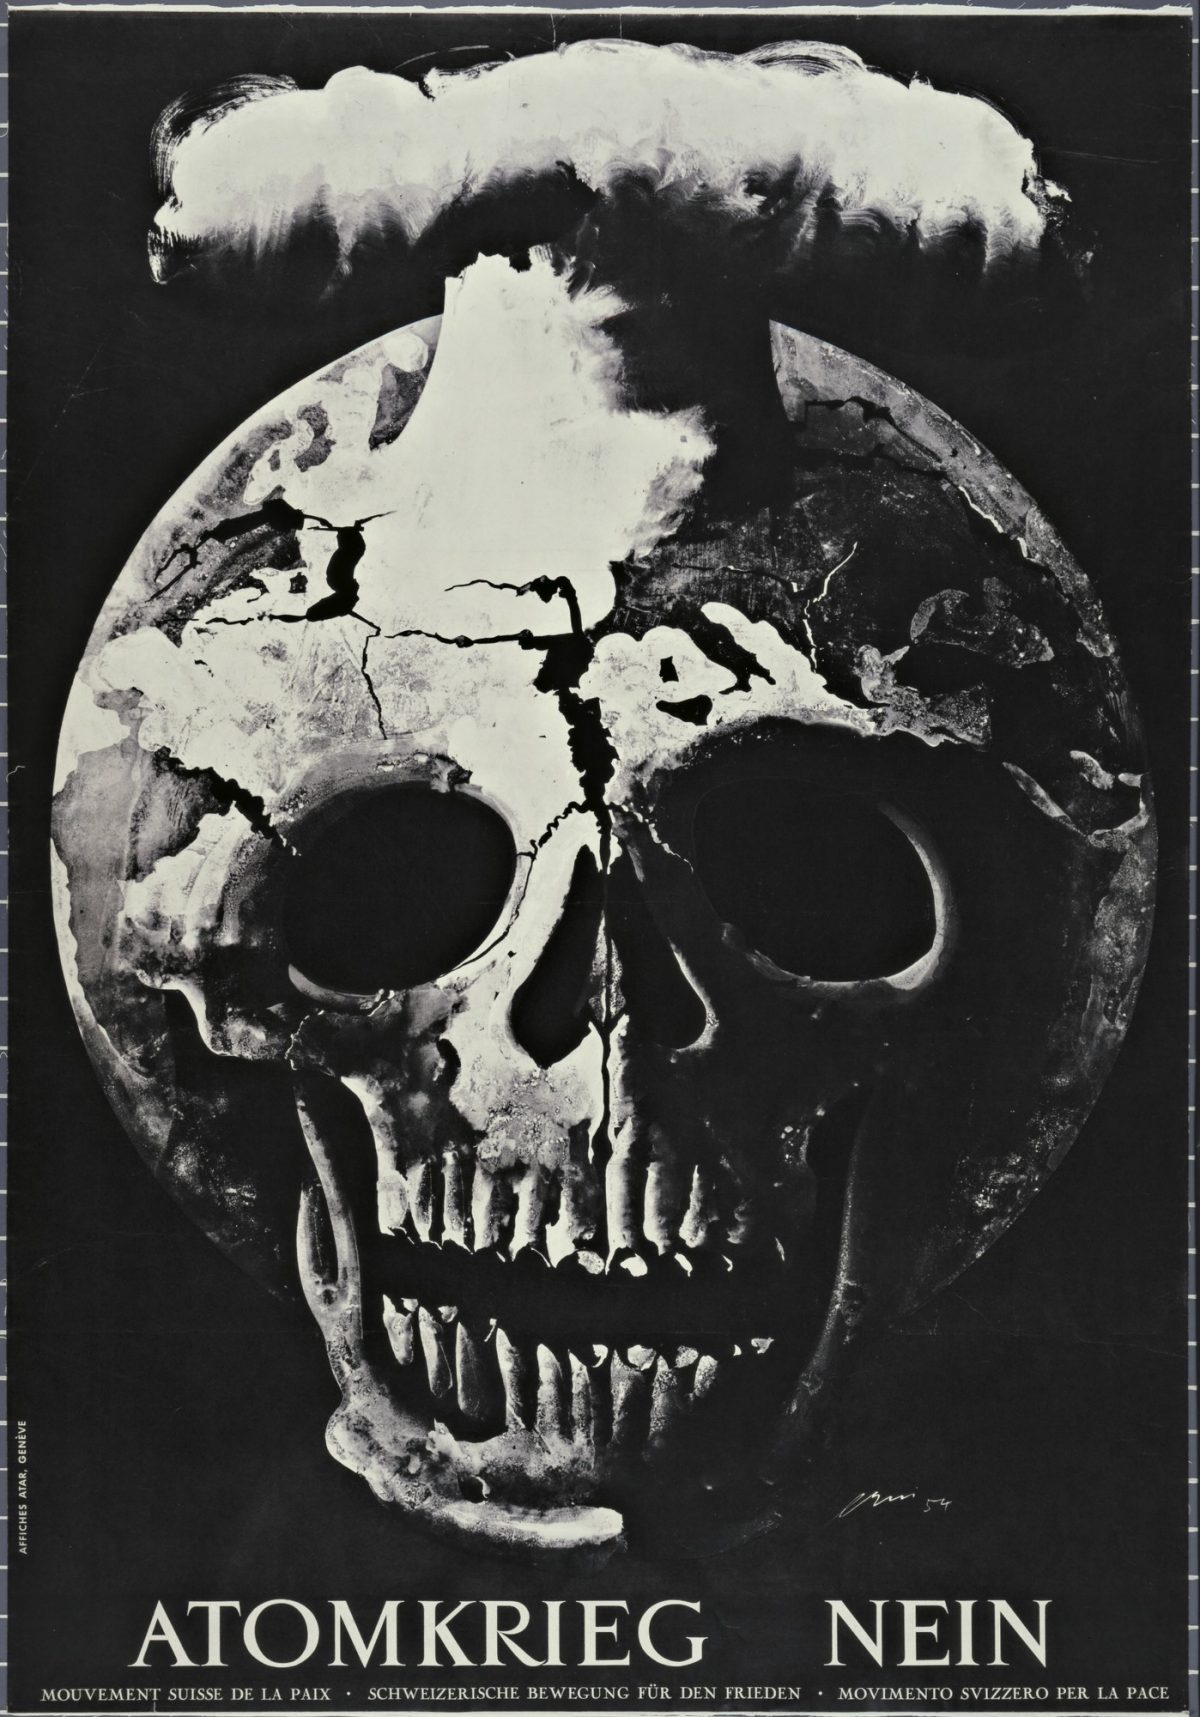 black and white image of a burst skull blowing out gas